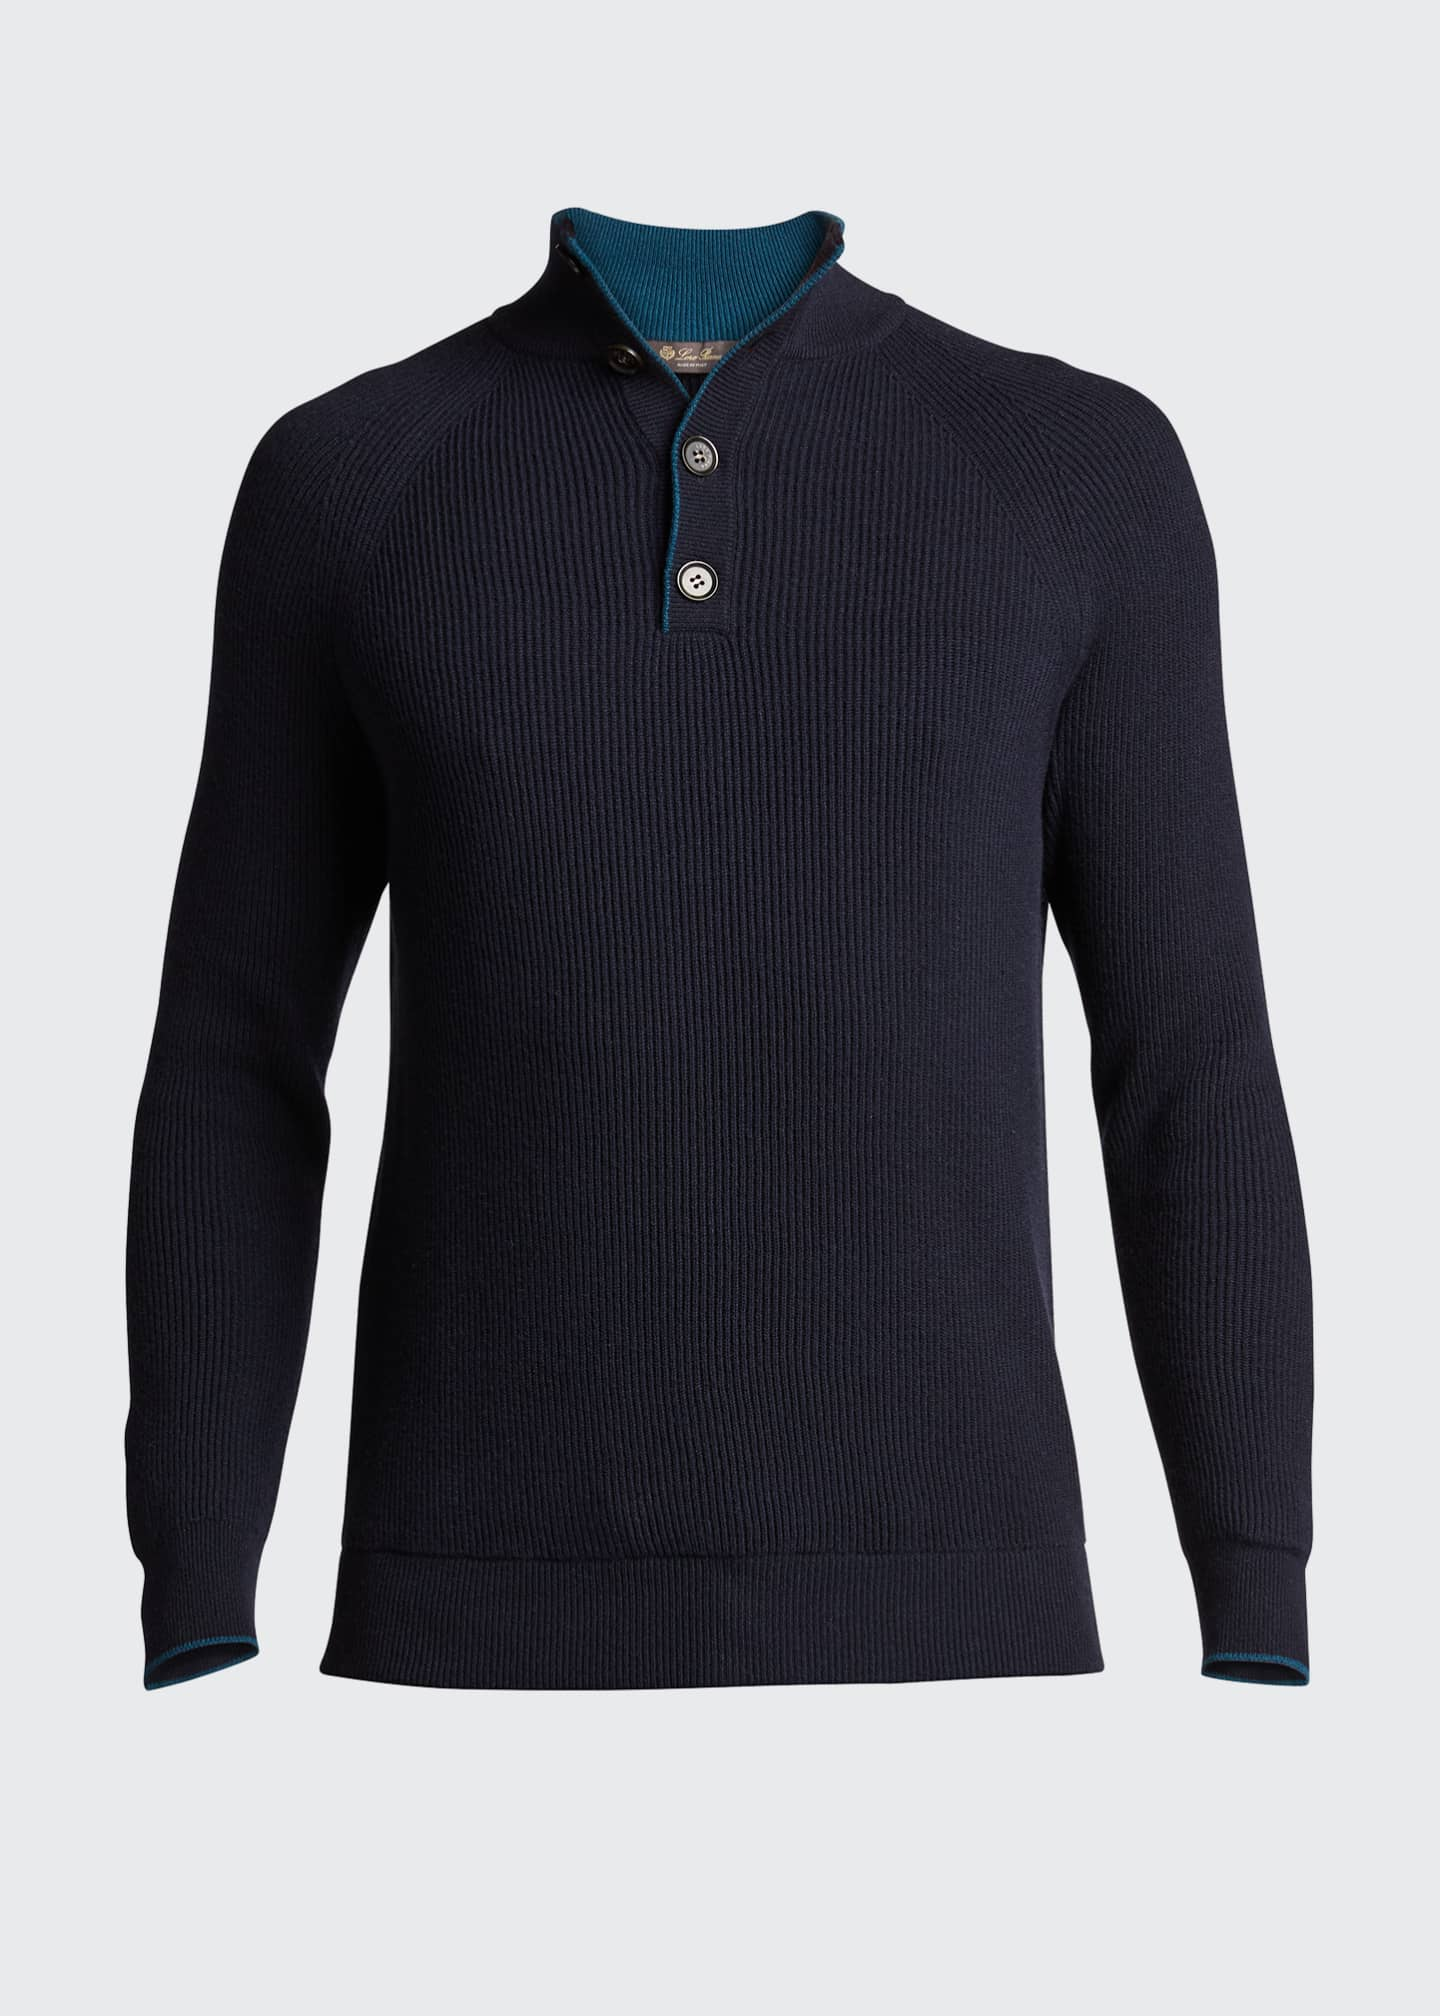 Image 5 of 5: Men's Riverside Mezzocolo Cashmere Sweater